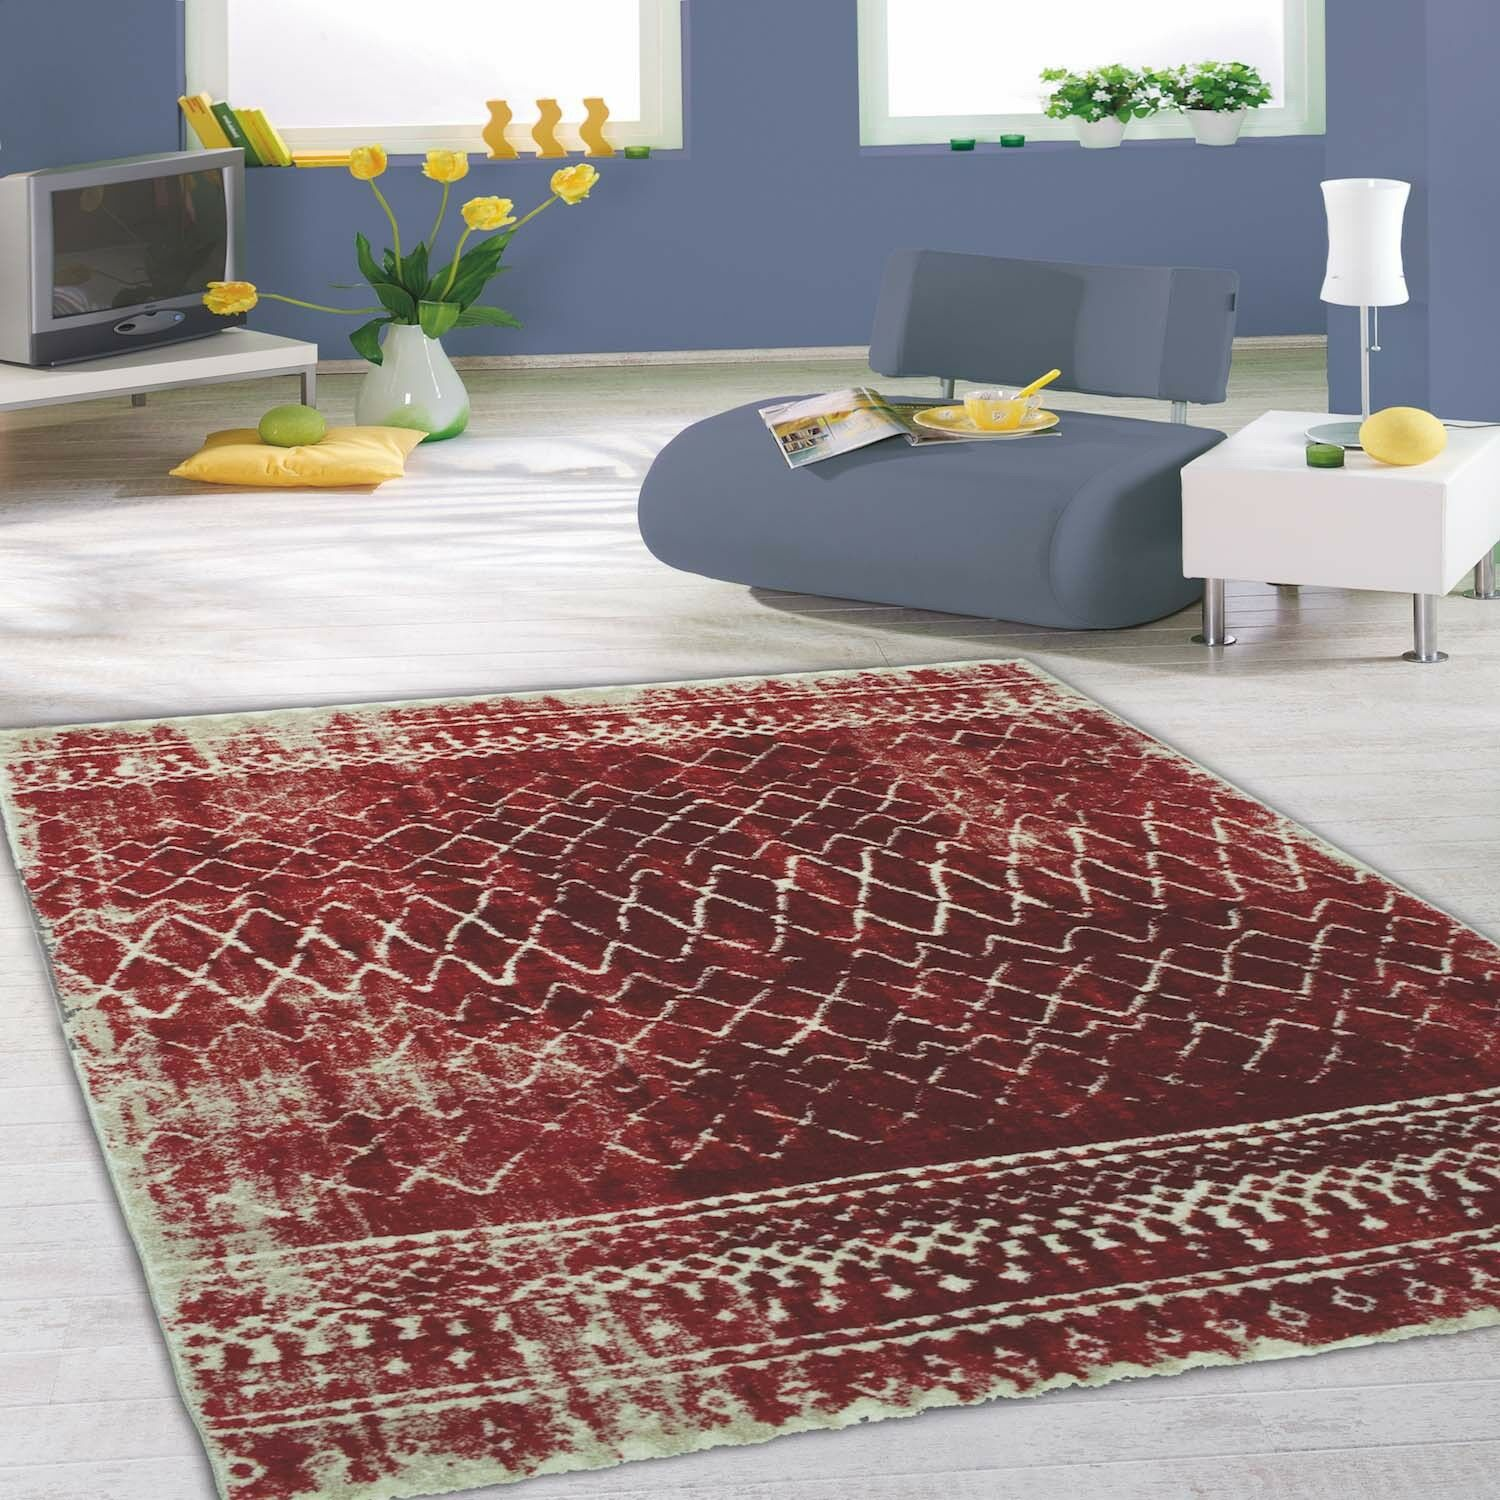 Moderne flachfor-TAPPETO SOFTTOUCH Highline con VINTAGE-pattern salotto rosso